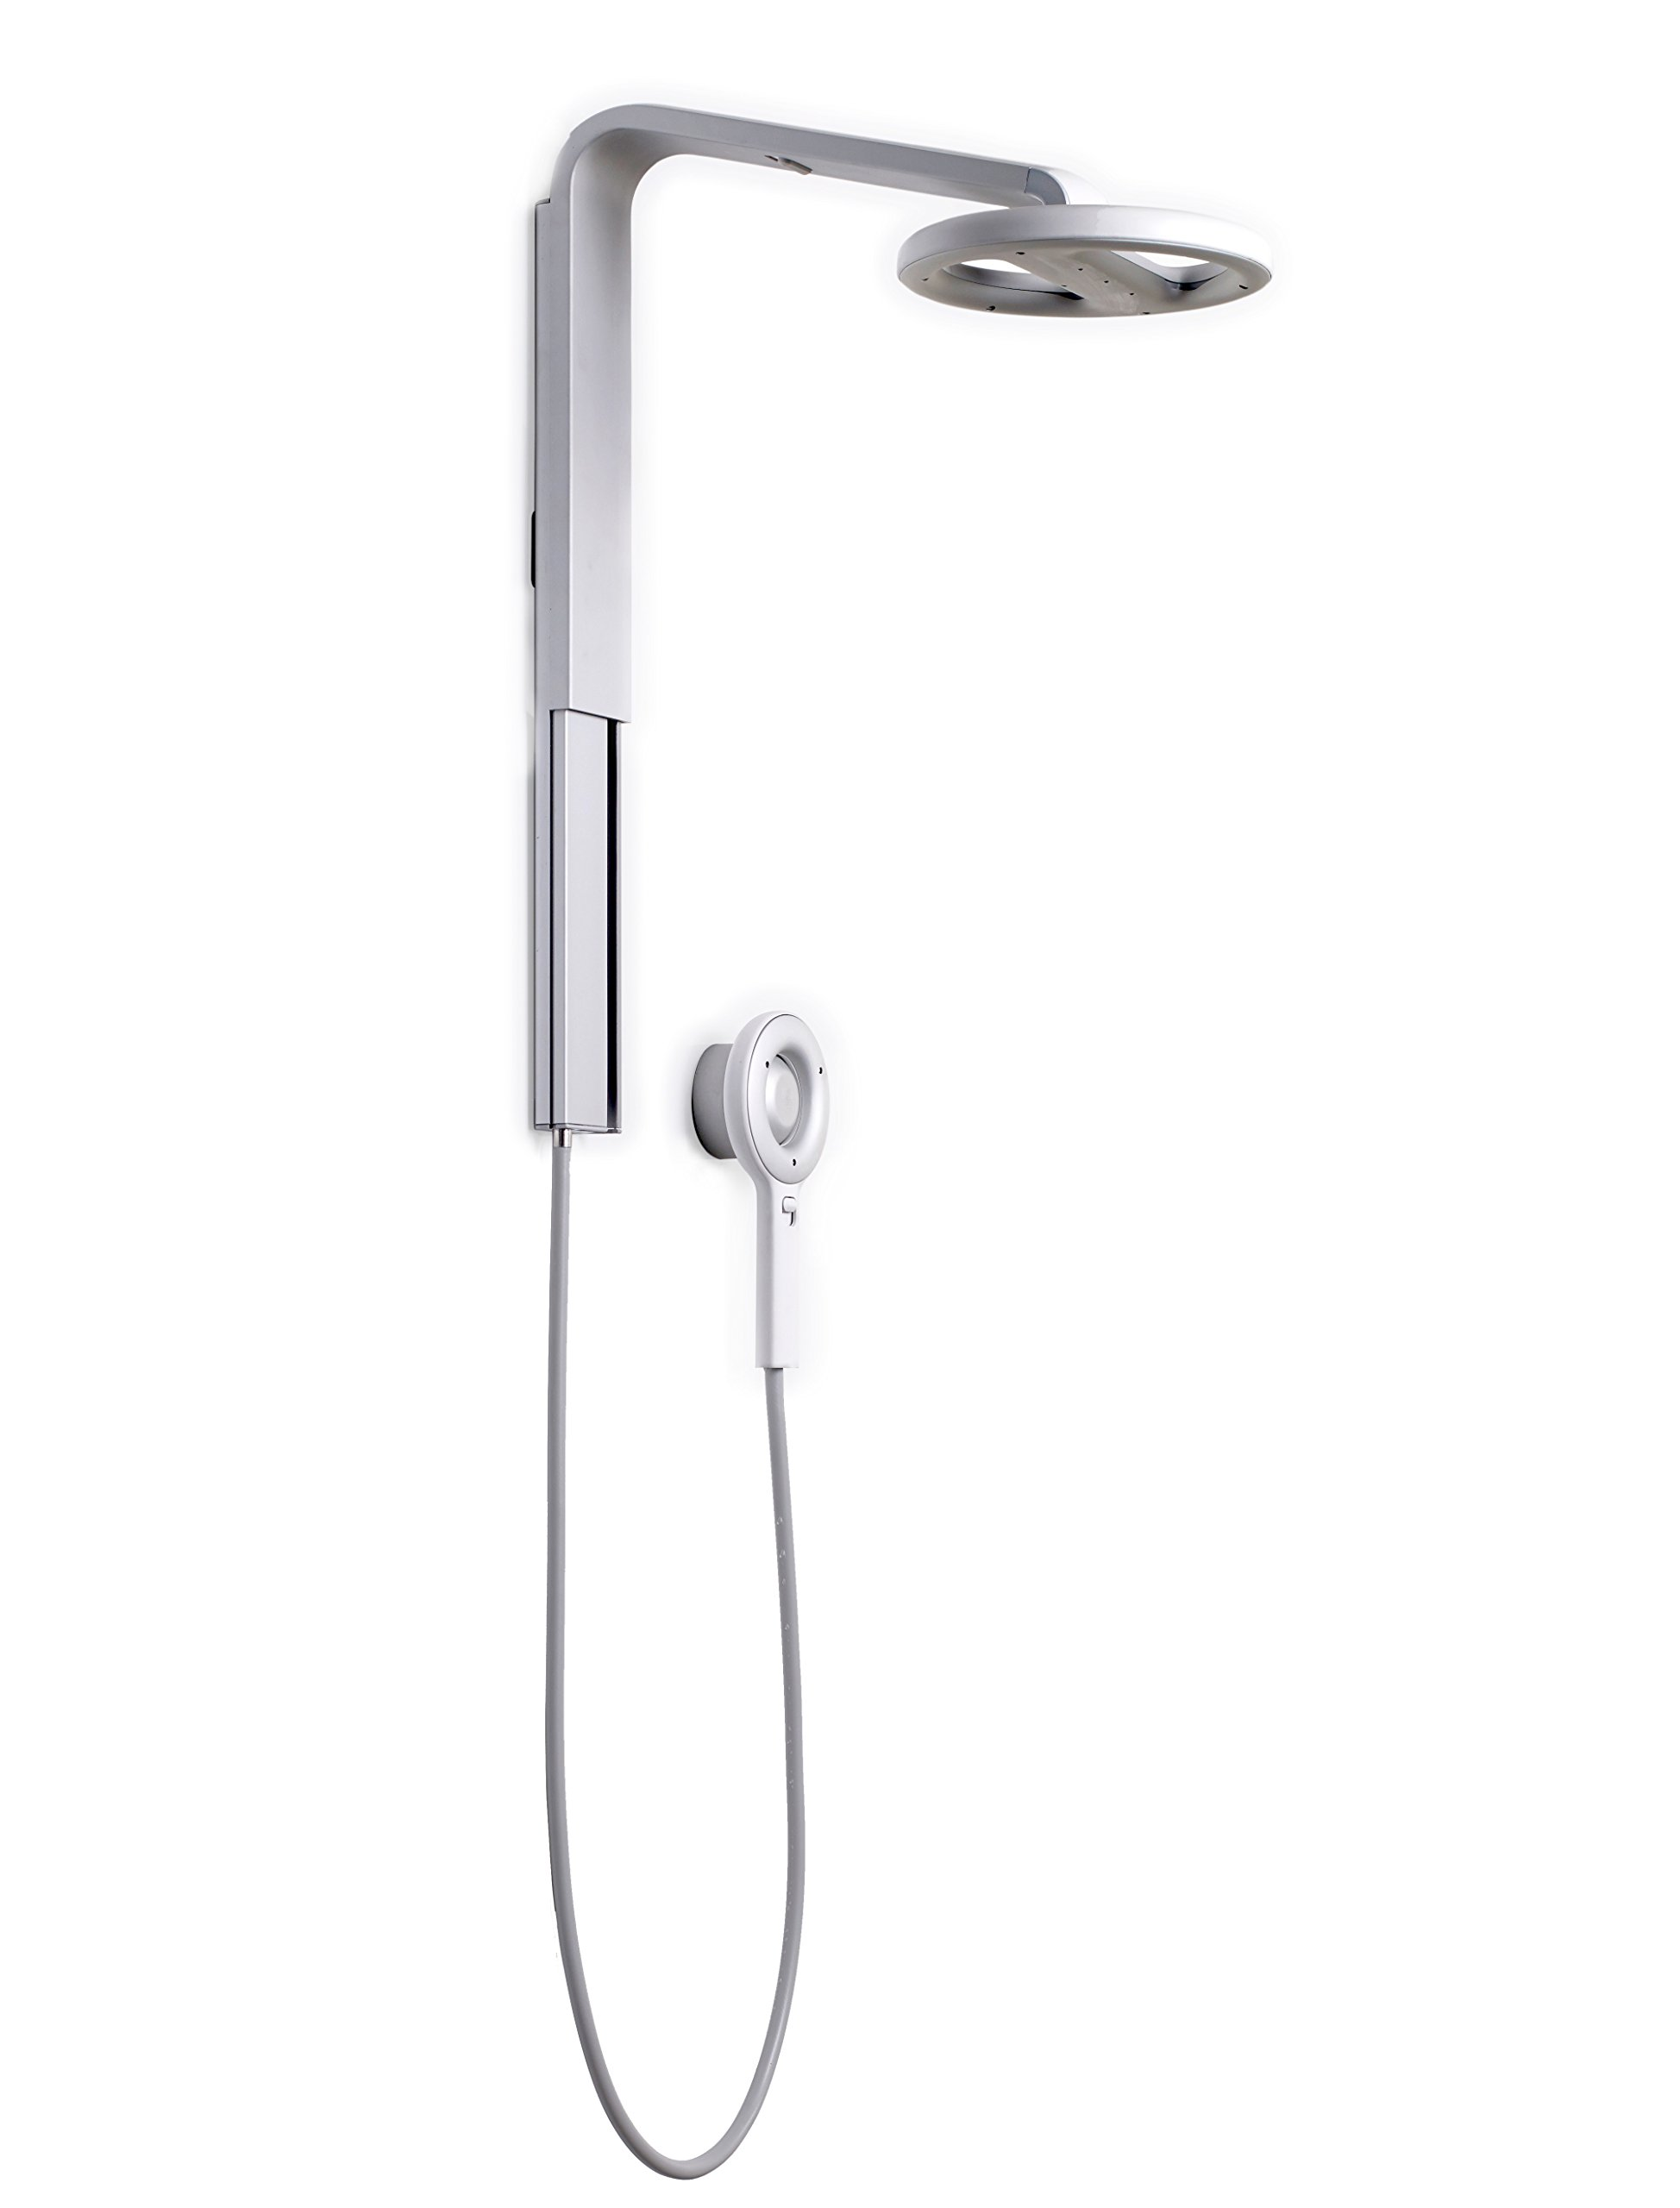 Nebia Spa Shower: Luxury Water Innovation. Sustainable Atomizing Shower System with 10'' Head, Handheld Wand, Adjustable Height. Award Winning Design, Aluminum, Easy DIY Install. Made in USA. by Nebia